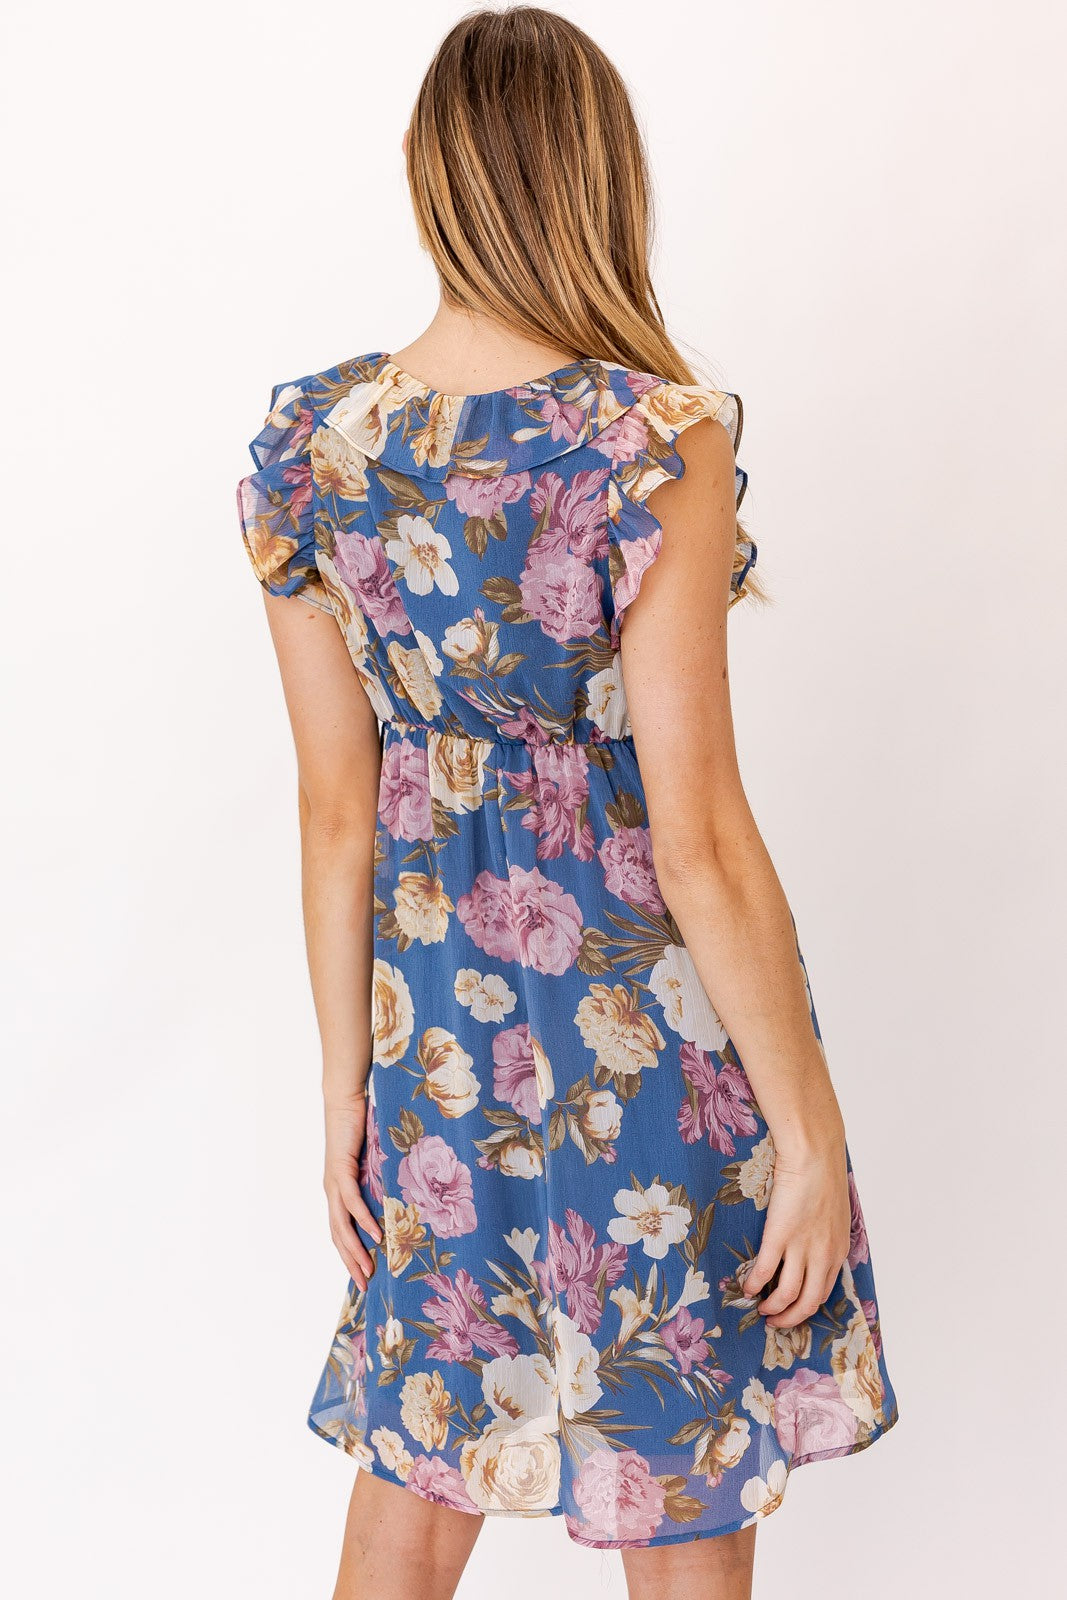 Ellie Floral Dress